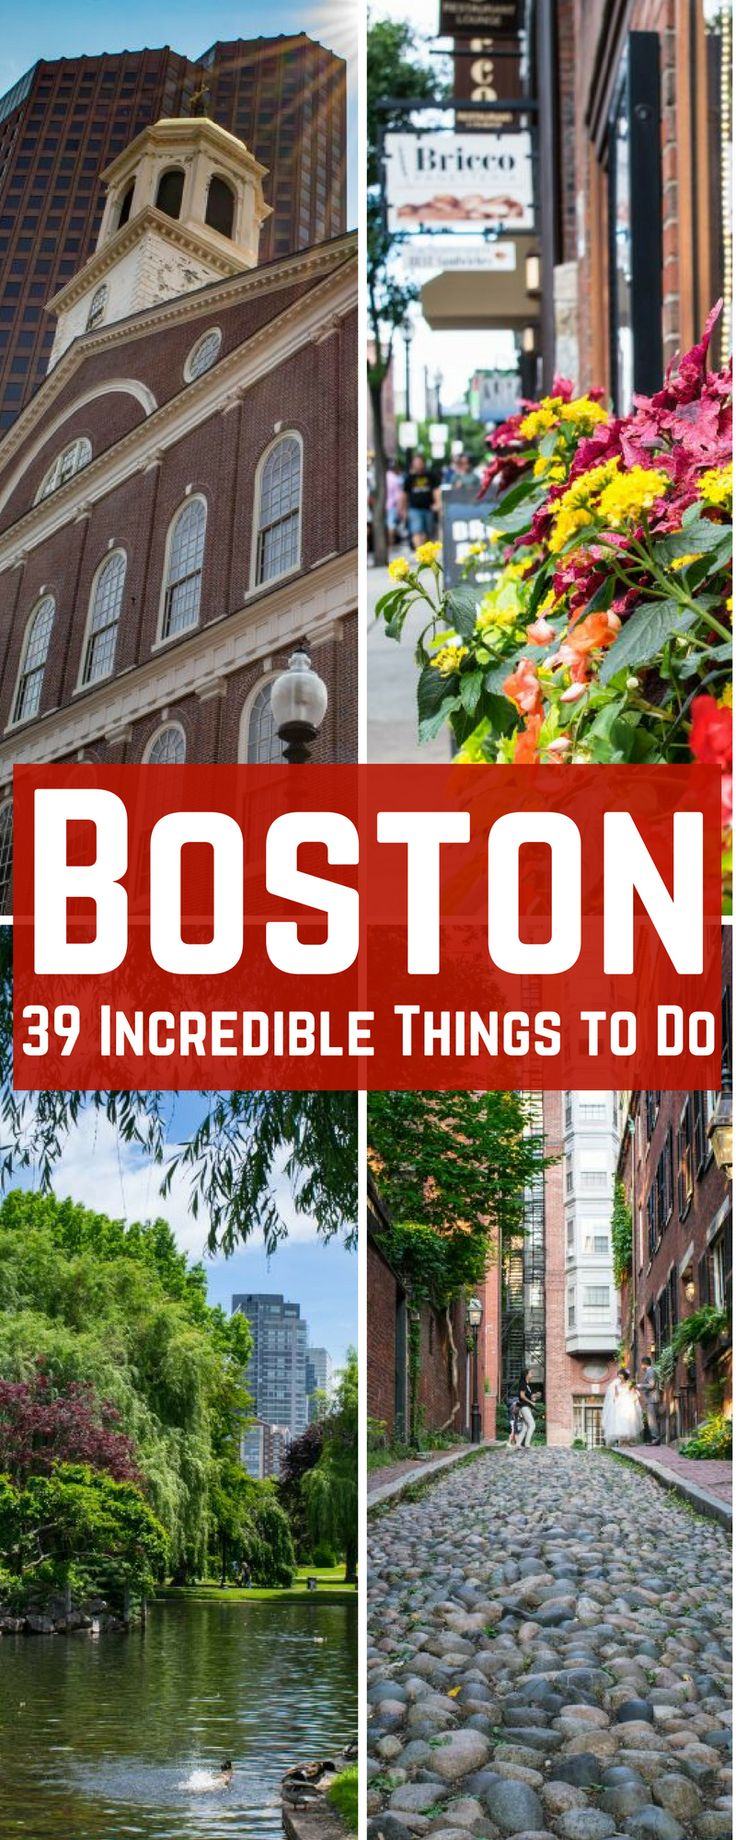 There is no limit to the number of incredible things to do in Boston: check out this list of 39 of the best things to do in Boston, complied from 3 months of living in Boston & exploring the ultimate American city.